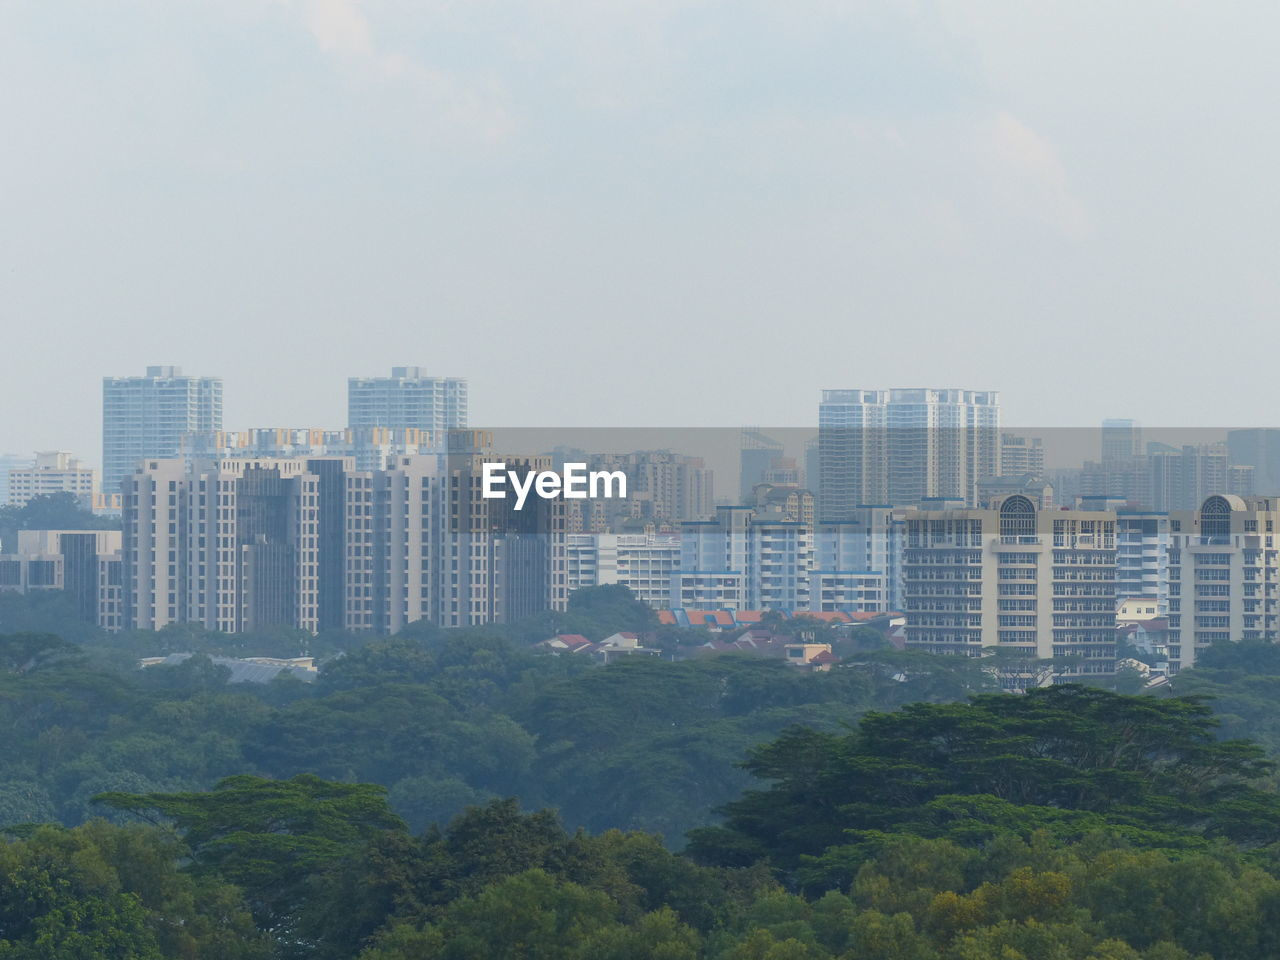 architecture, skyscraper, city, cityscape, building exterior, built structure, modern, no people, growth, tree, outdoors, sky, day, urban skyline, residential